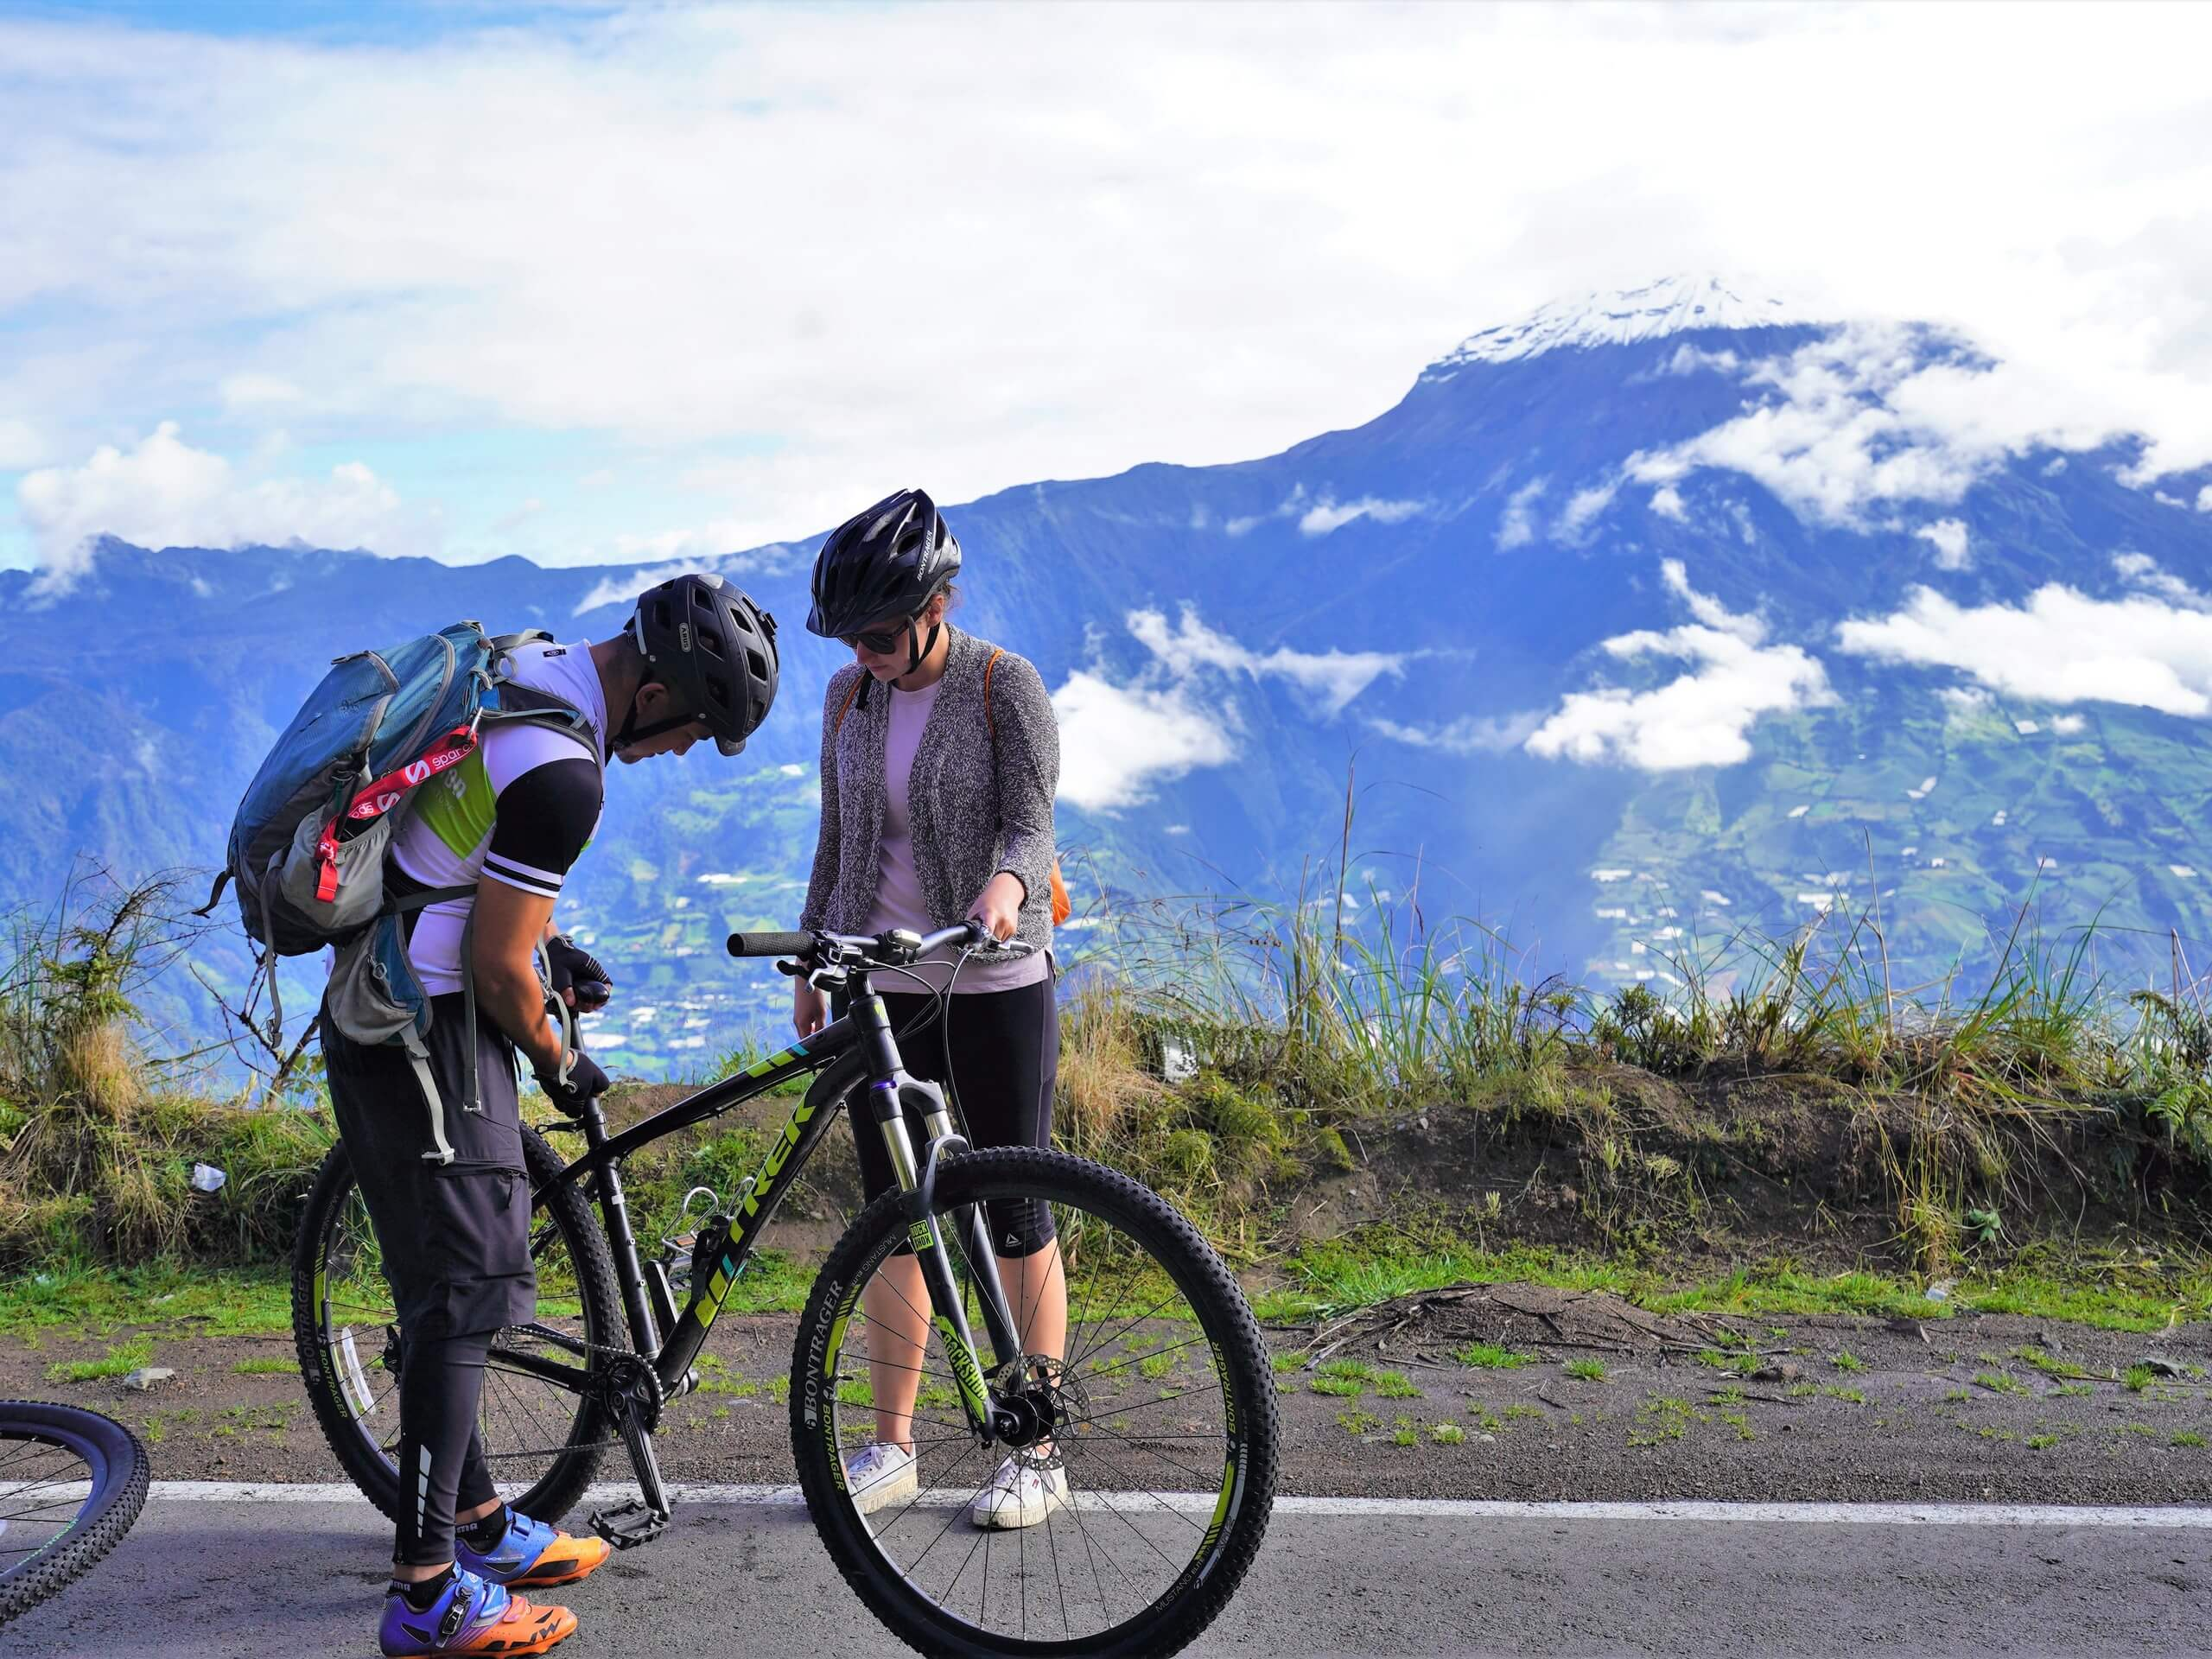 Two bikers checking out the views in Ecuador